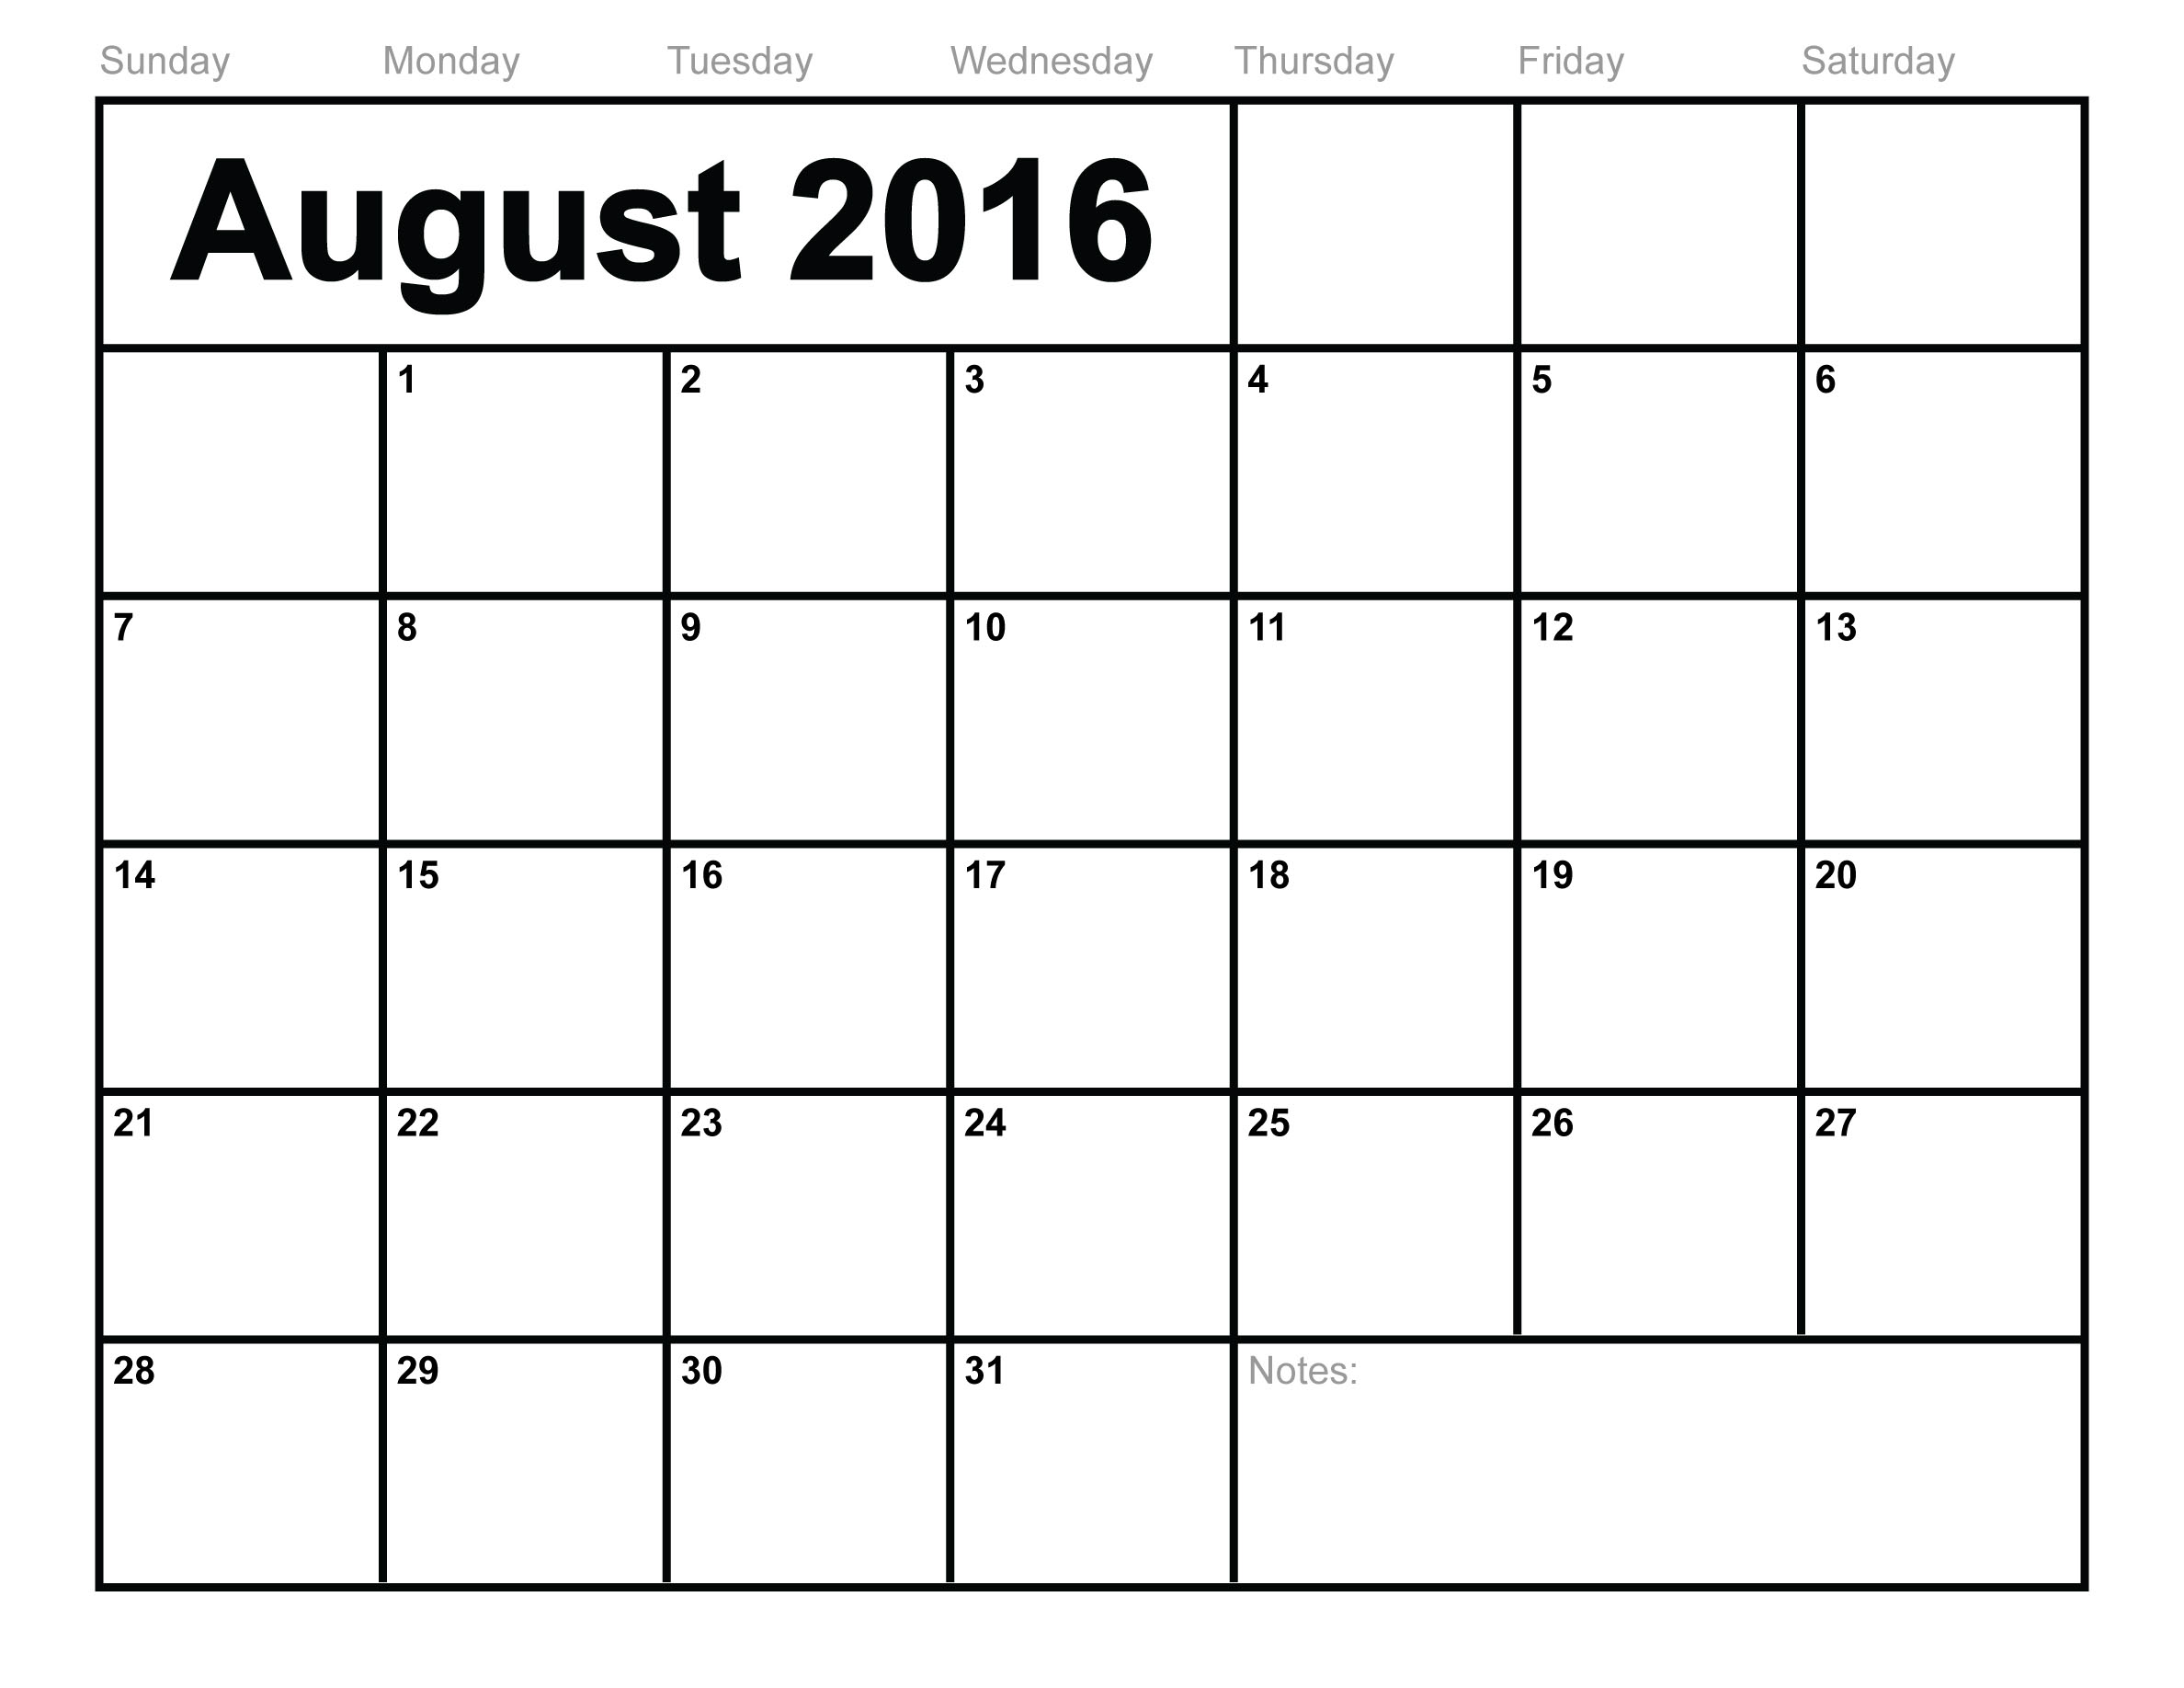 August 2016 calendar clipart royalty free library July 2016 calendar sporty clipart - ClipartFest royalty free library